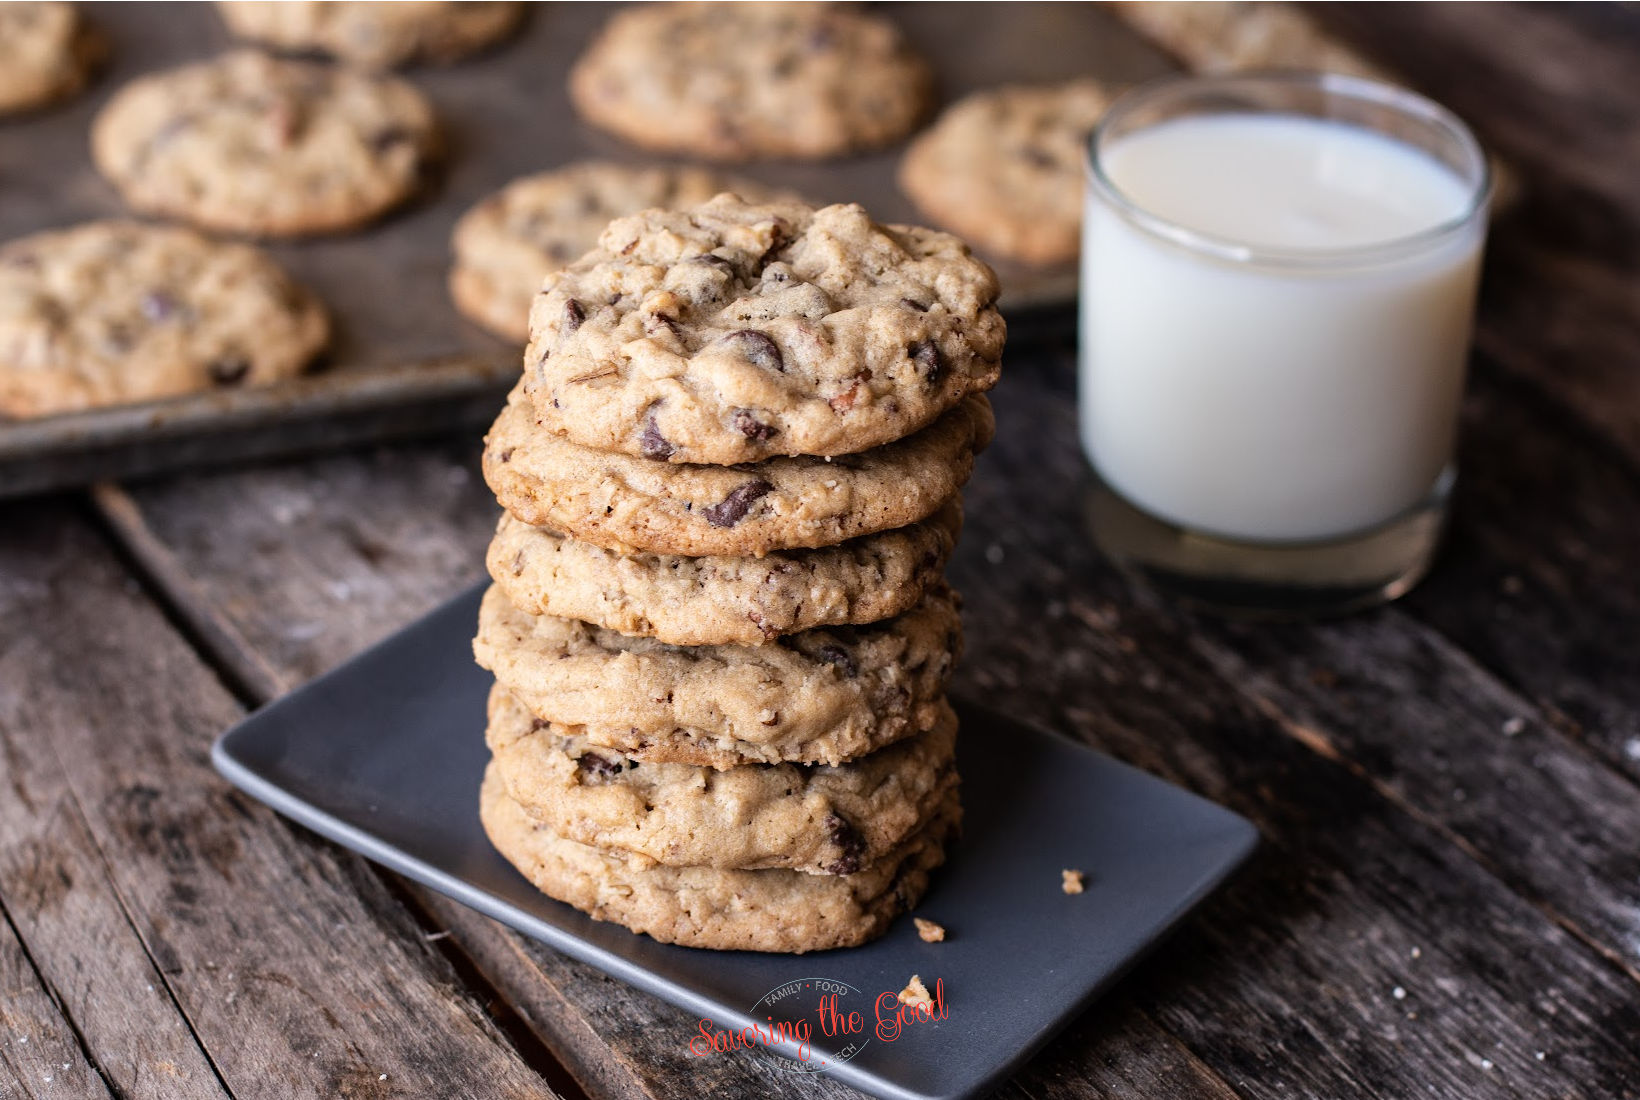 The Original DoubleTree Cookie sticked on a plate with milk in the background